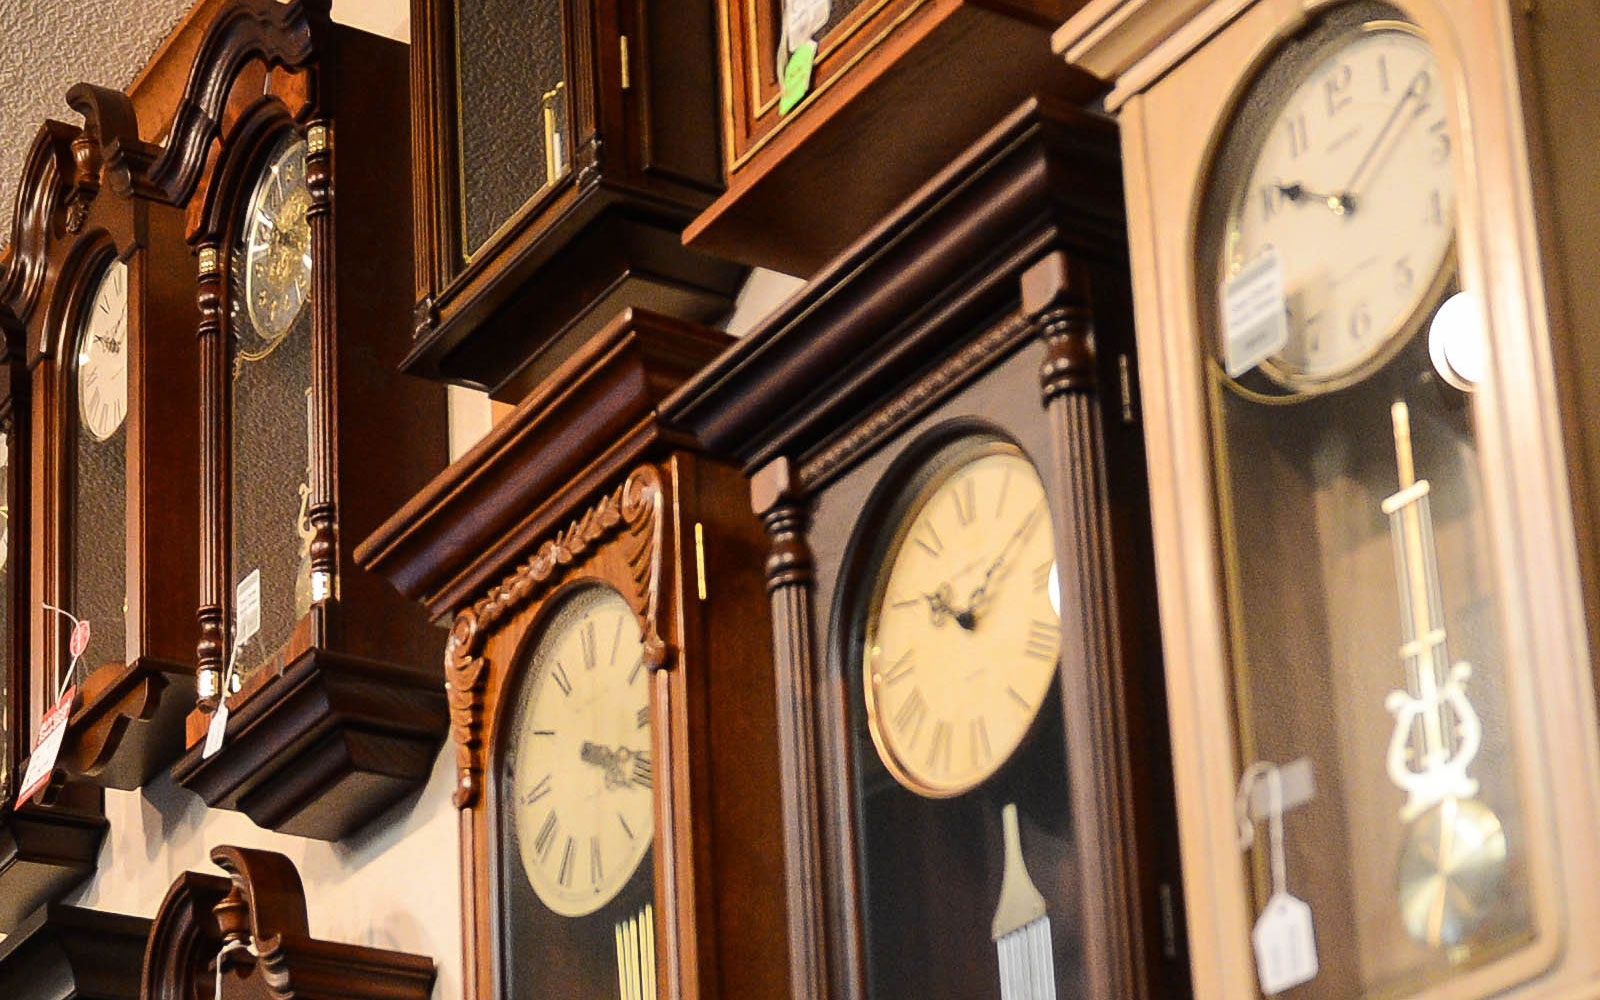 Largest Collection of clocks in Colorado